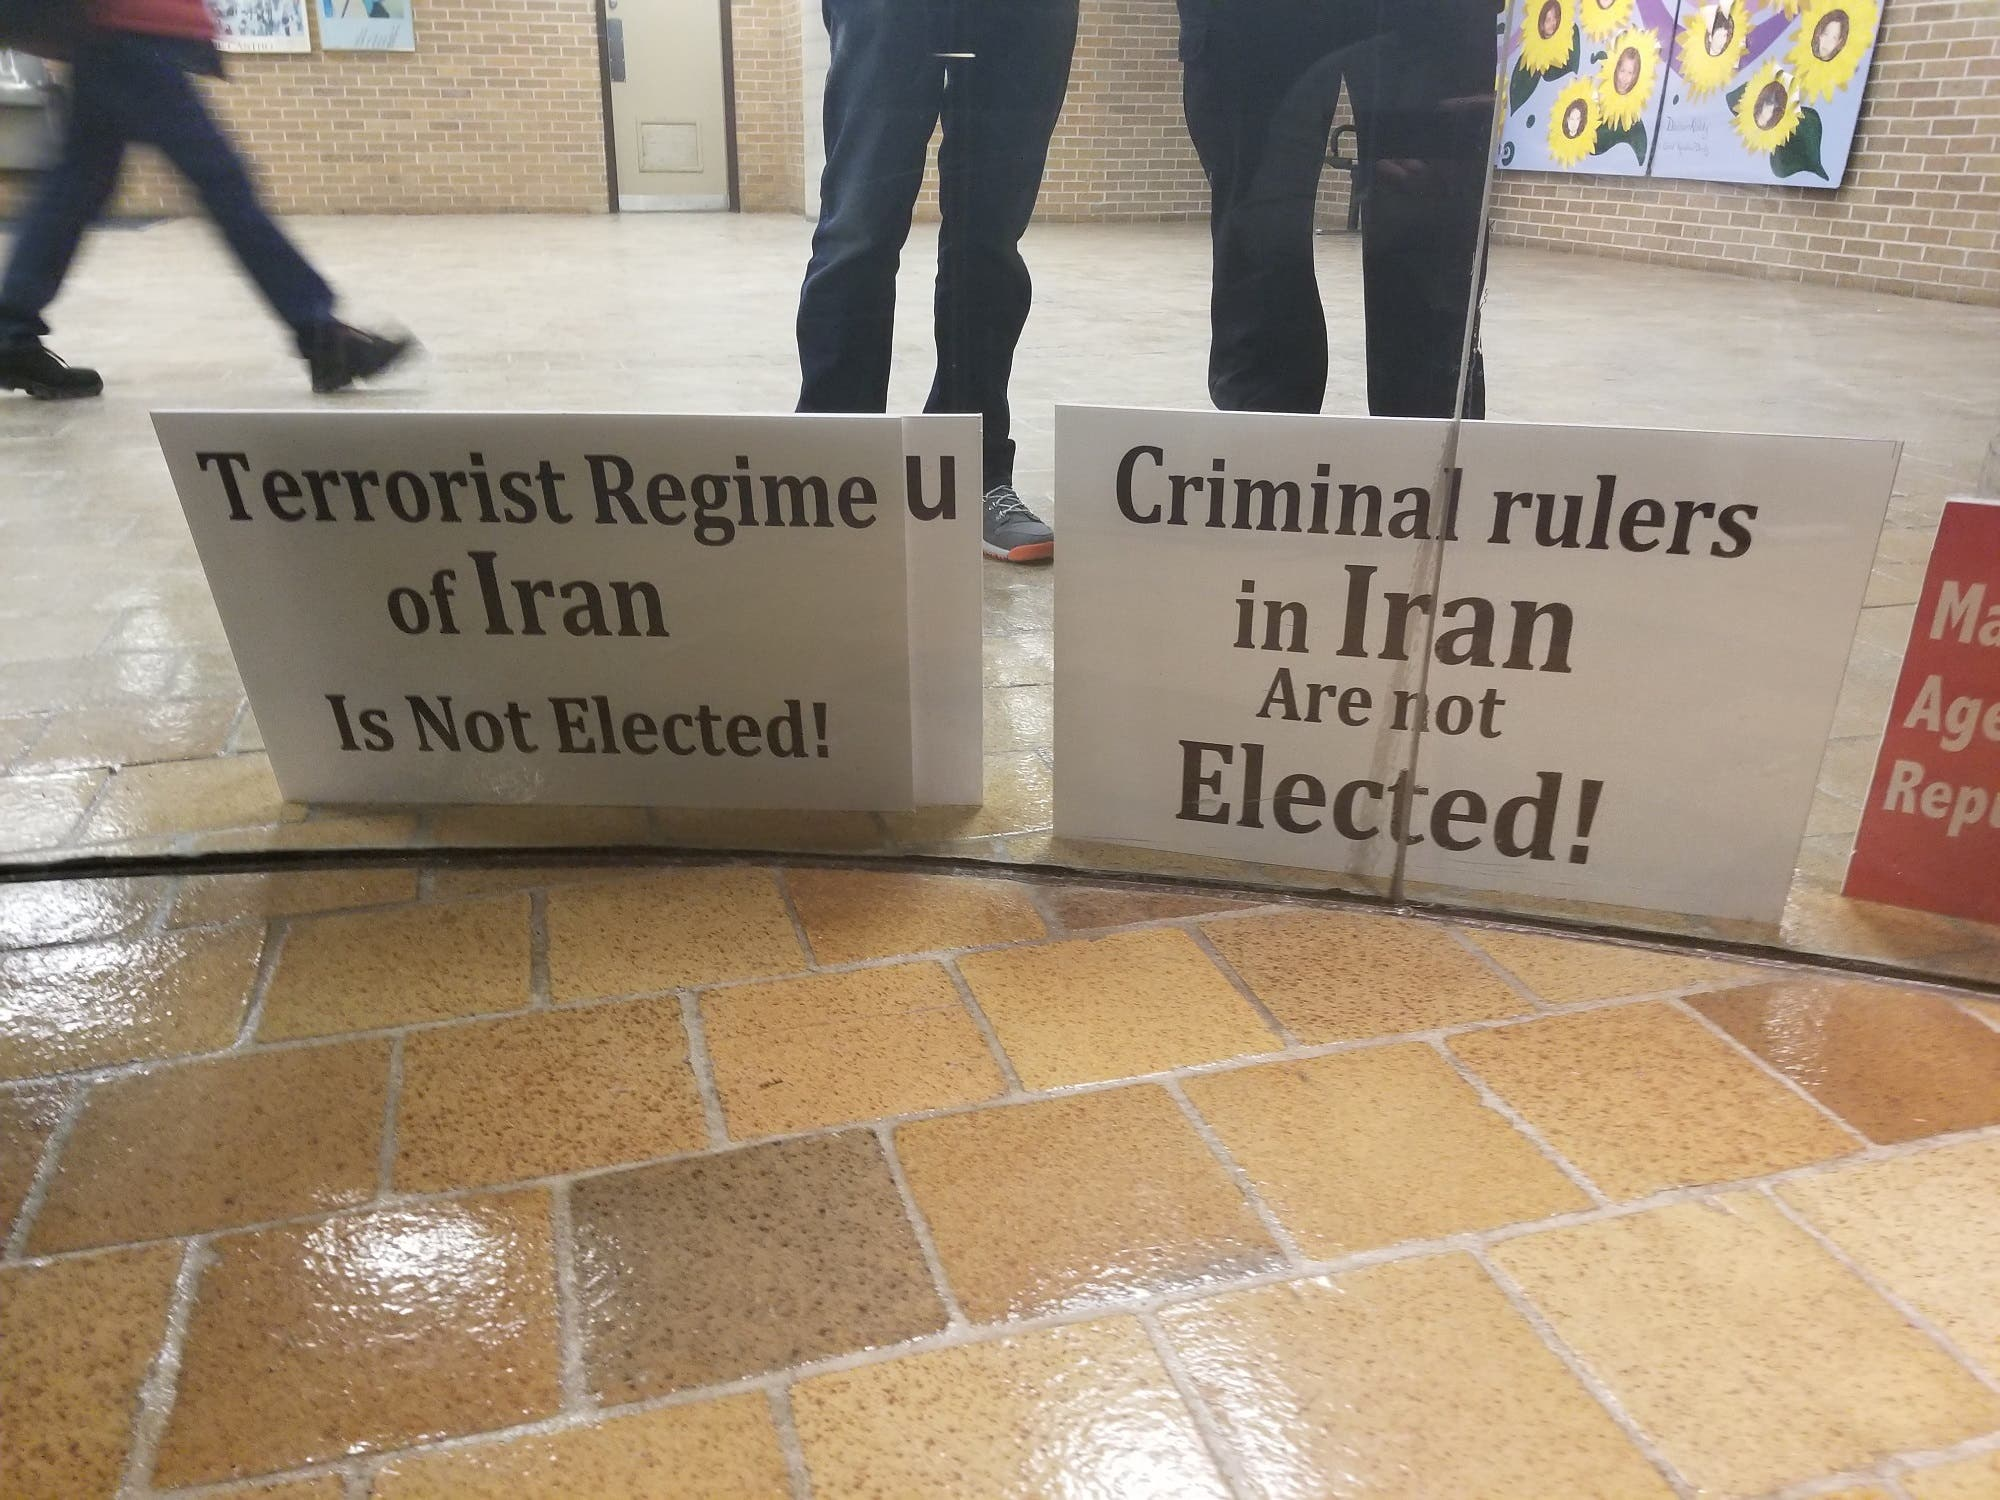 Placards seen at the rally in North York Civic Centre on Jan. 7, 2018. (Picture by Dina Al-Shibeeb)